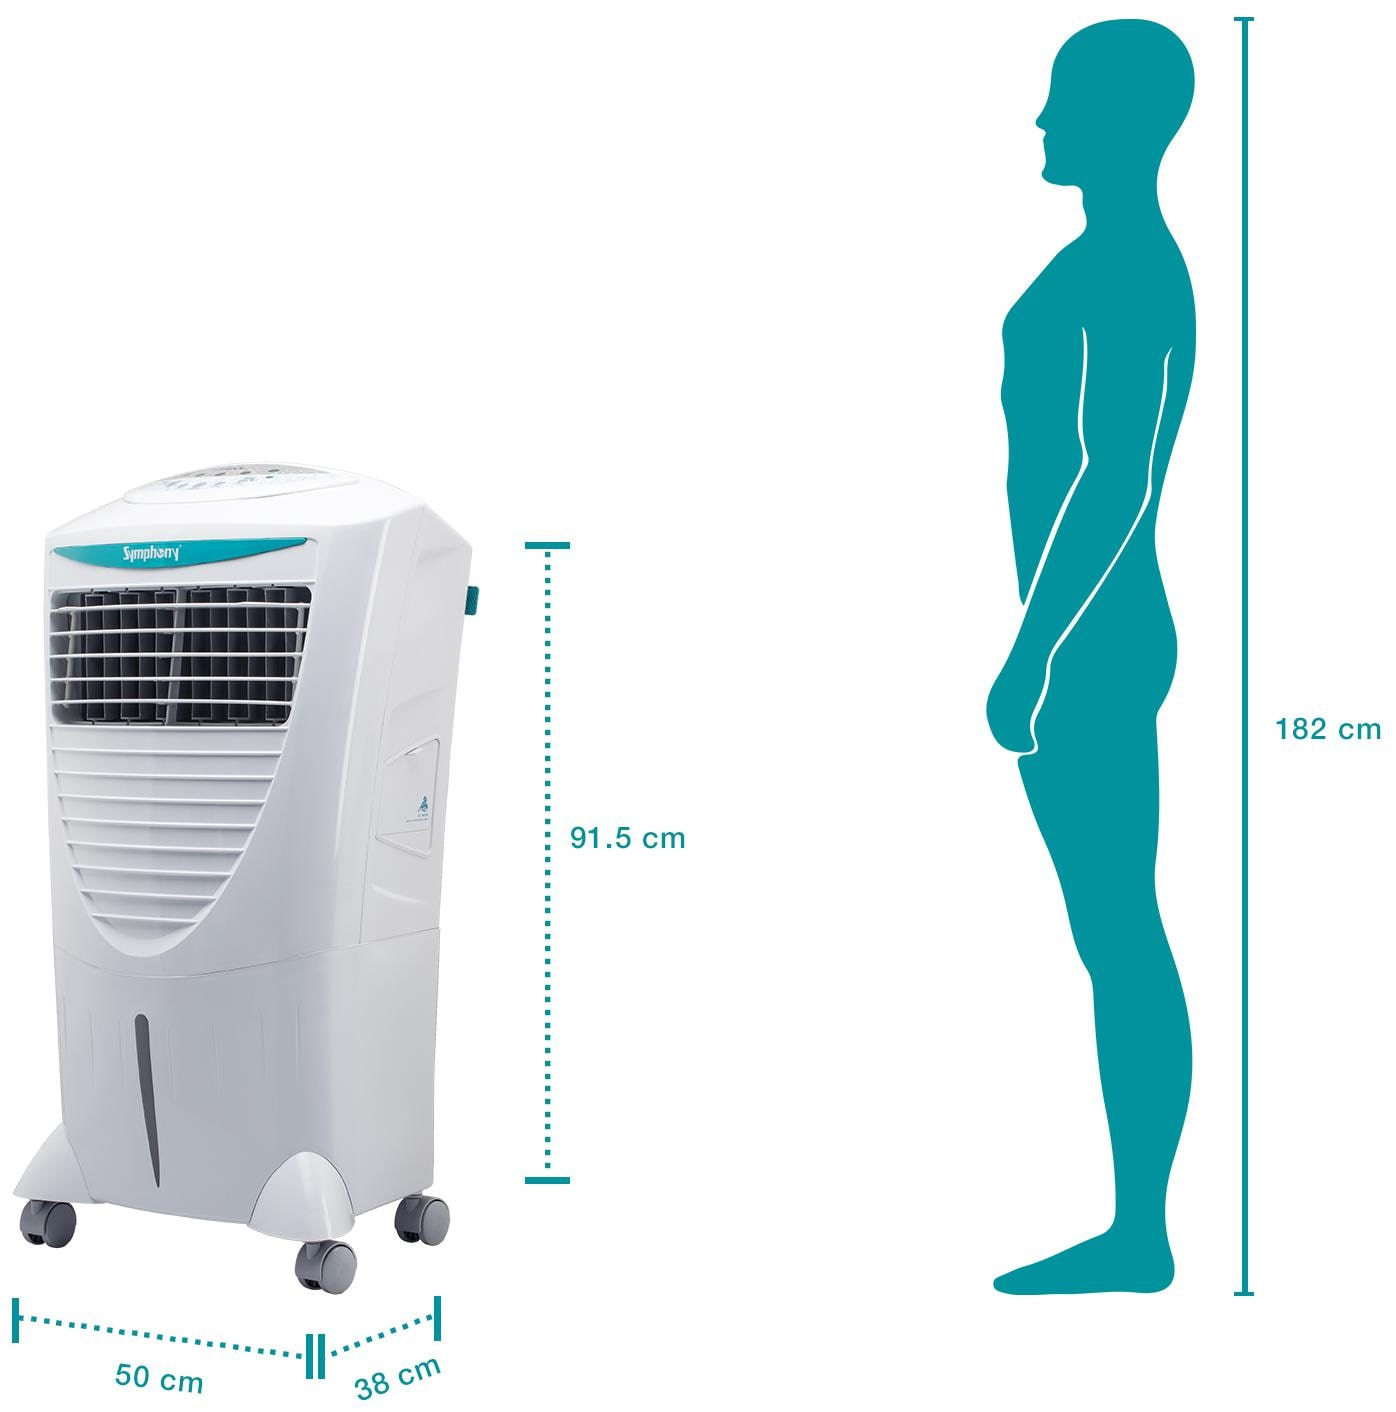 a491522af17 Symphony Hicool i 31 Litre Air Cooler (White) - with Remote Control and  i-Pure Technology Online at 15% off.